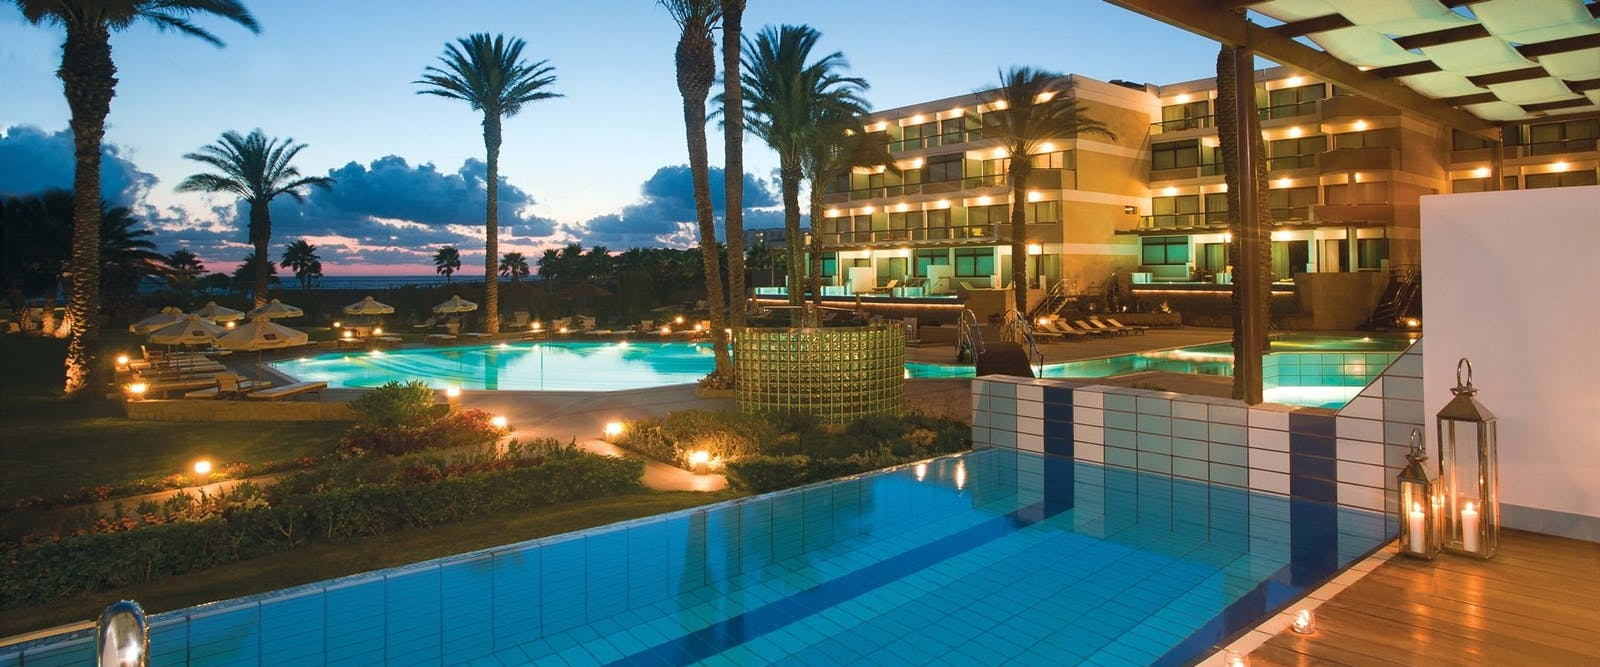 Swimming Pool in the Evening at Constantinou Bros Asimina Suites Hotel, Paphos, Cyprus